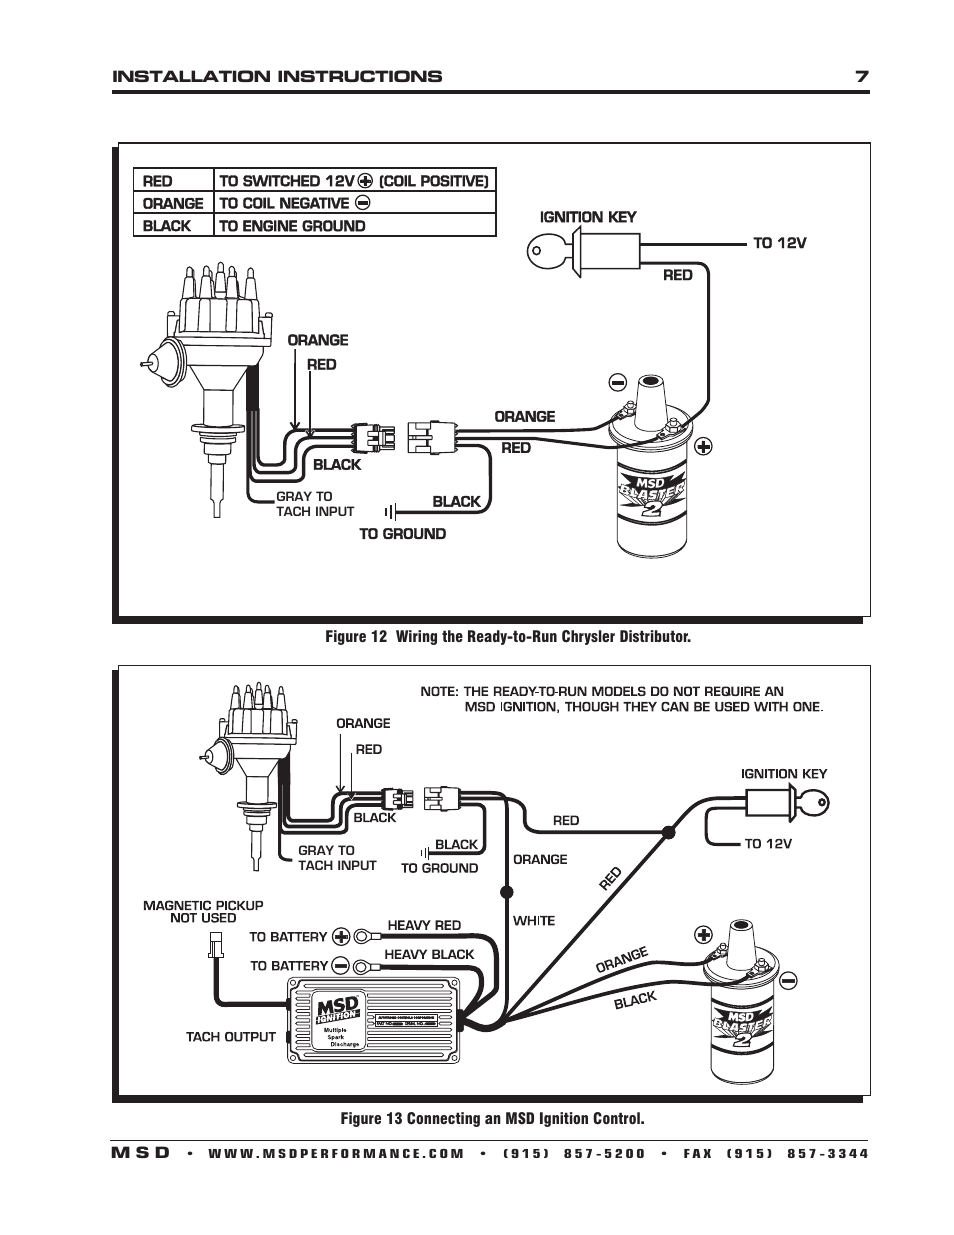 medium resolution of msd 8388 chrysler 318 360 ready to run distributor installation user manual page 7 8 also for 8386 chrysler 383 400 ready to run distributor